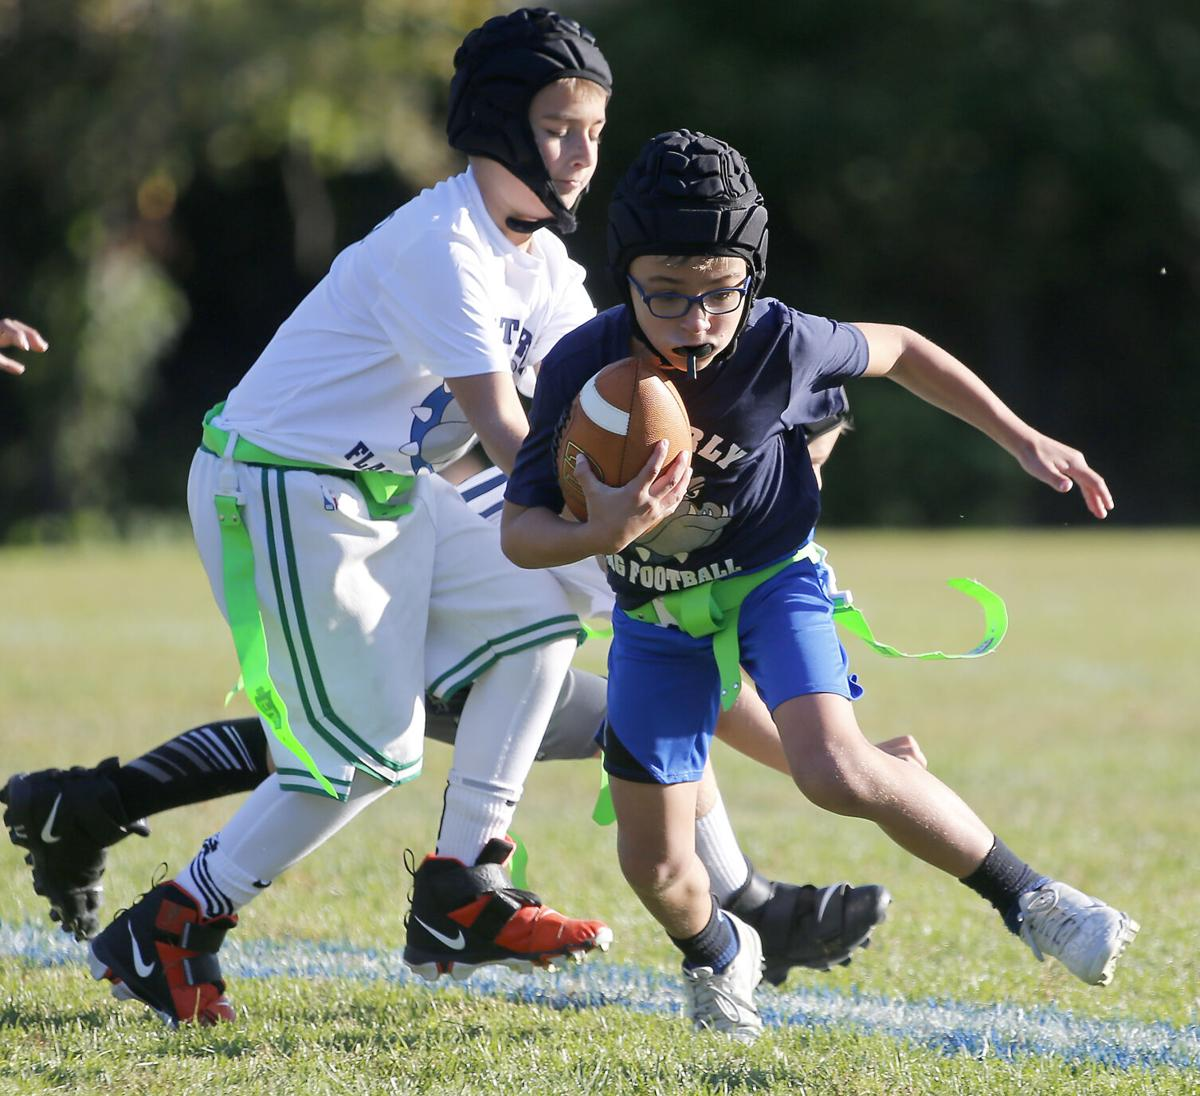 WESTERLY_PEEWEE_FOOTBALL